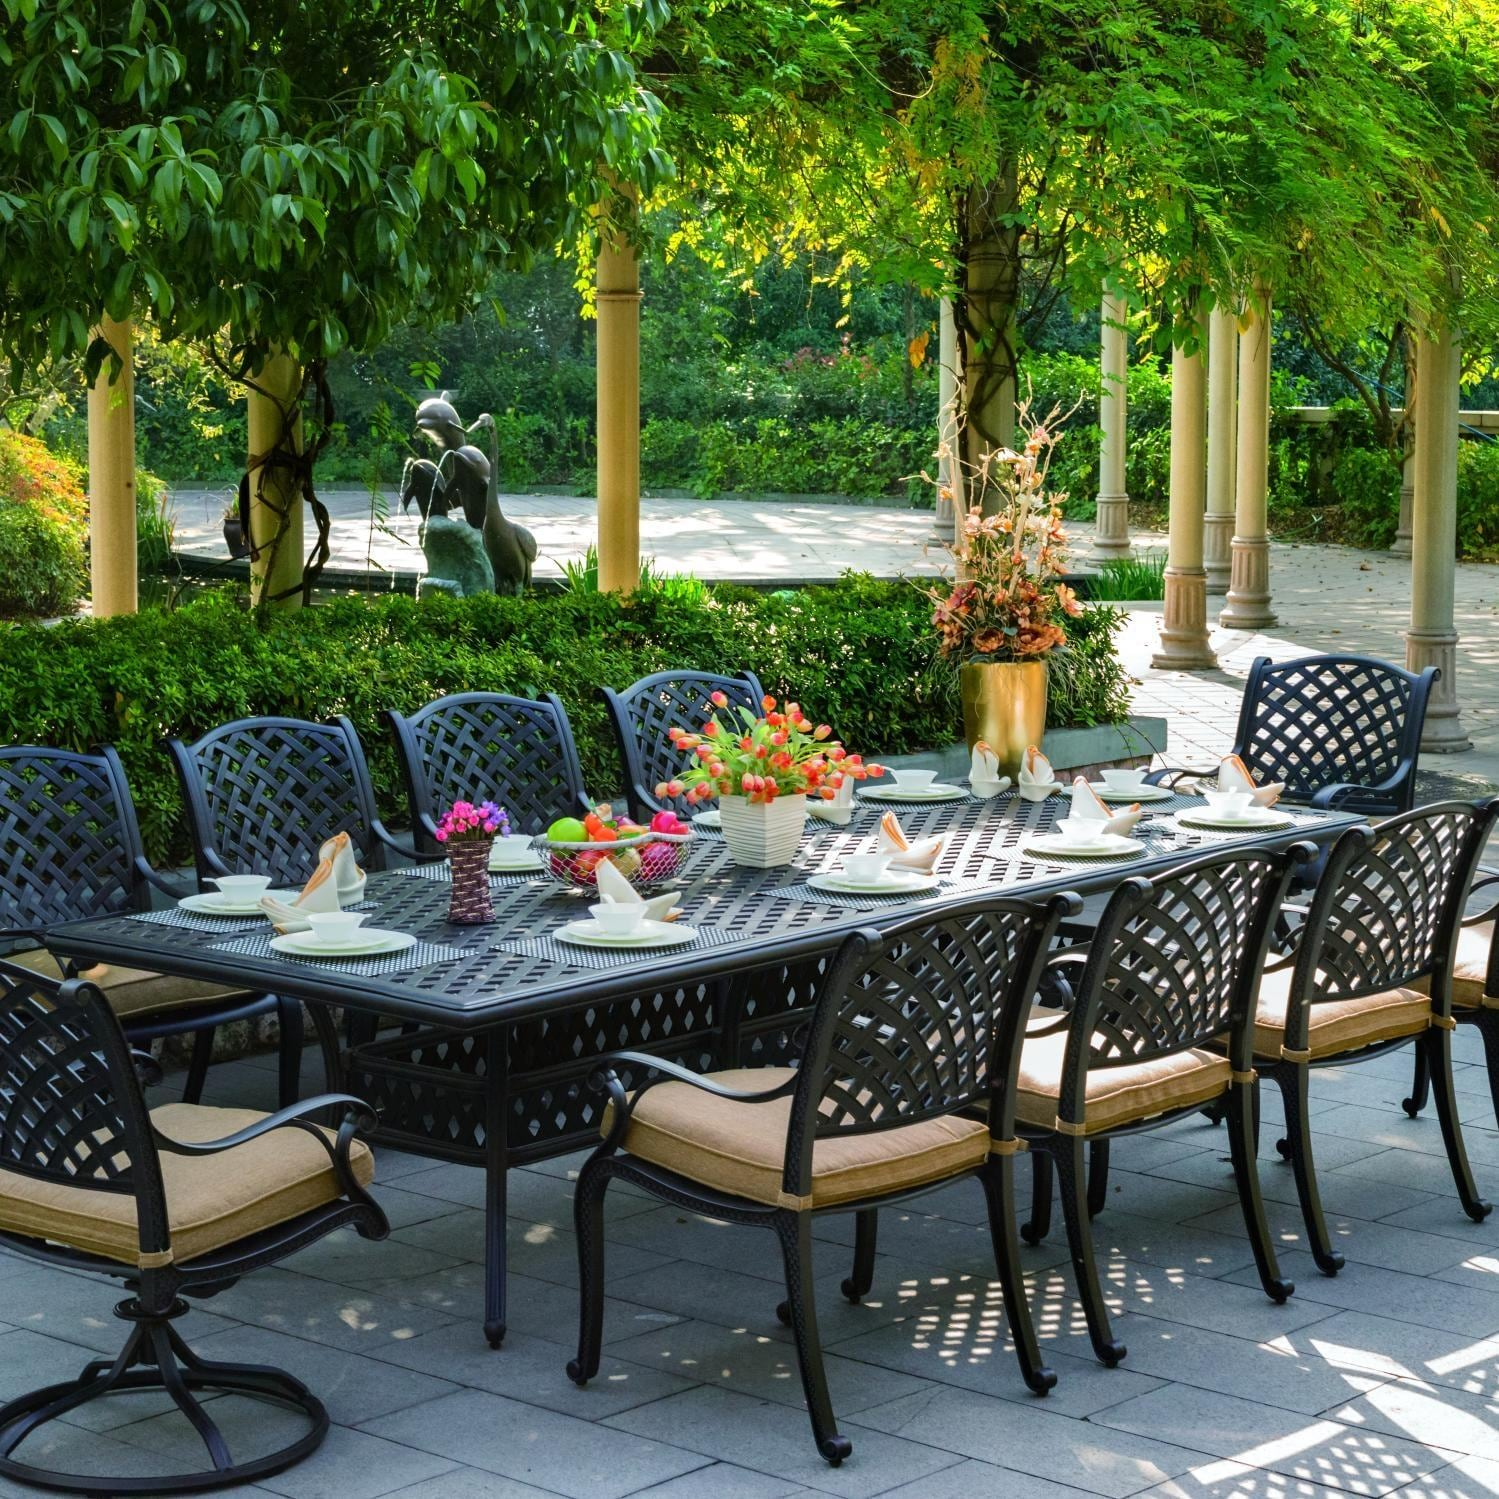 Darlee nassau 10 person cast aluminum patio dining set for Outdoor dining sets for 10